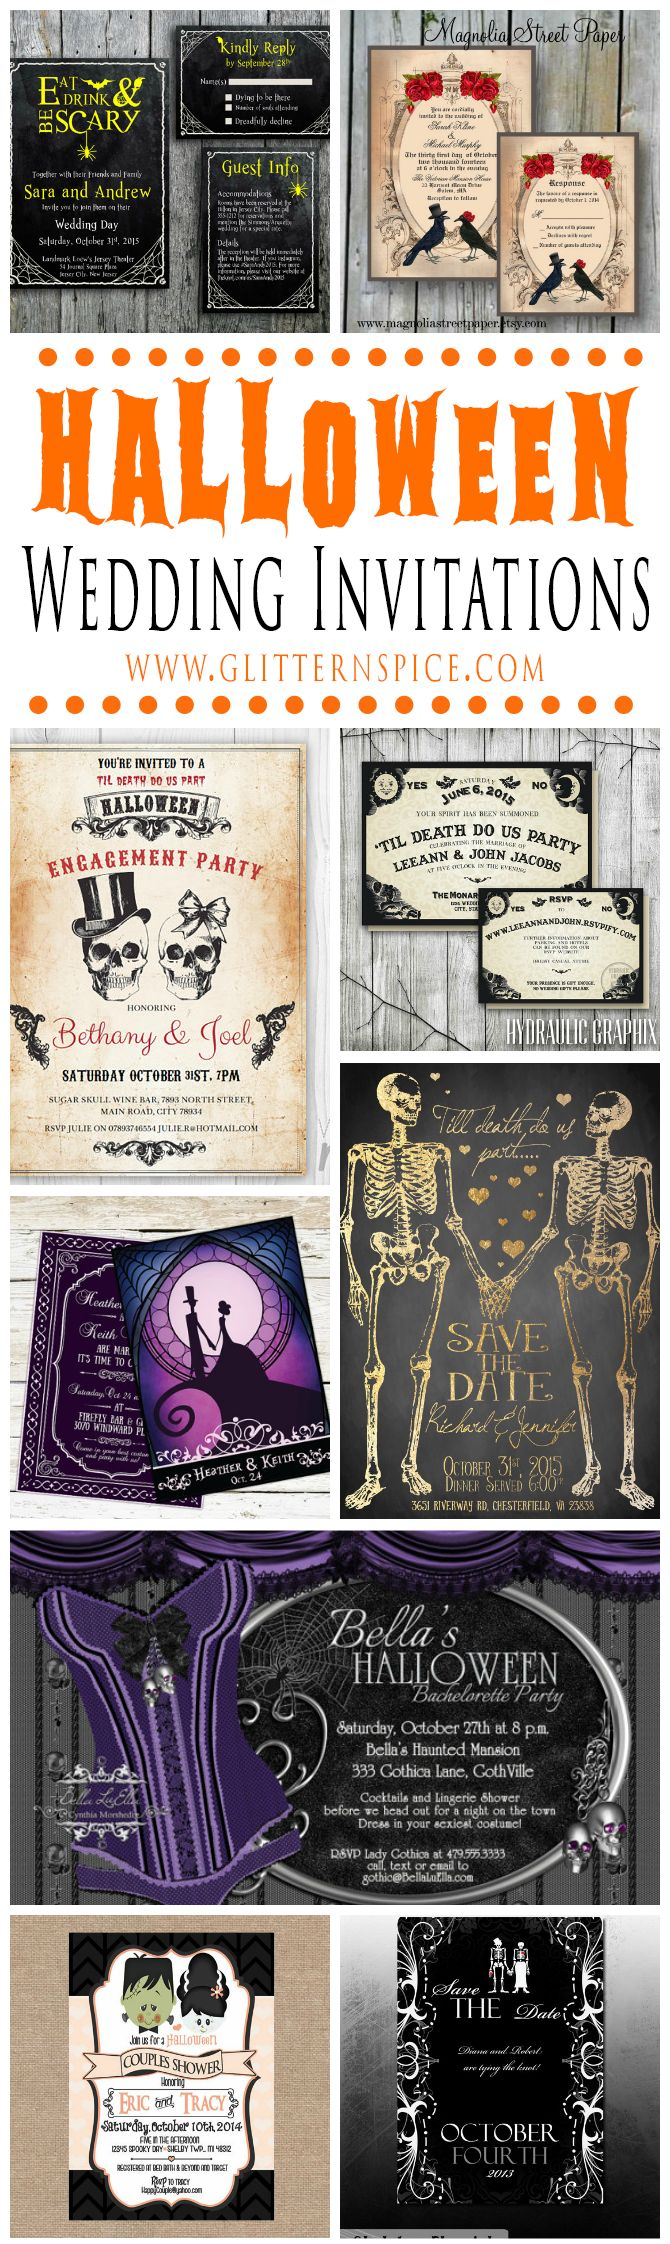 Best 25+ Halloween wedding invitations ideas on Pinterest | Gothic ...